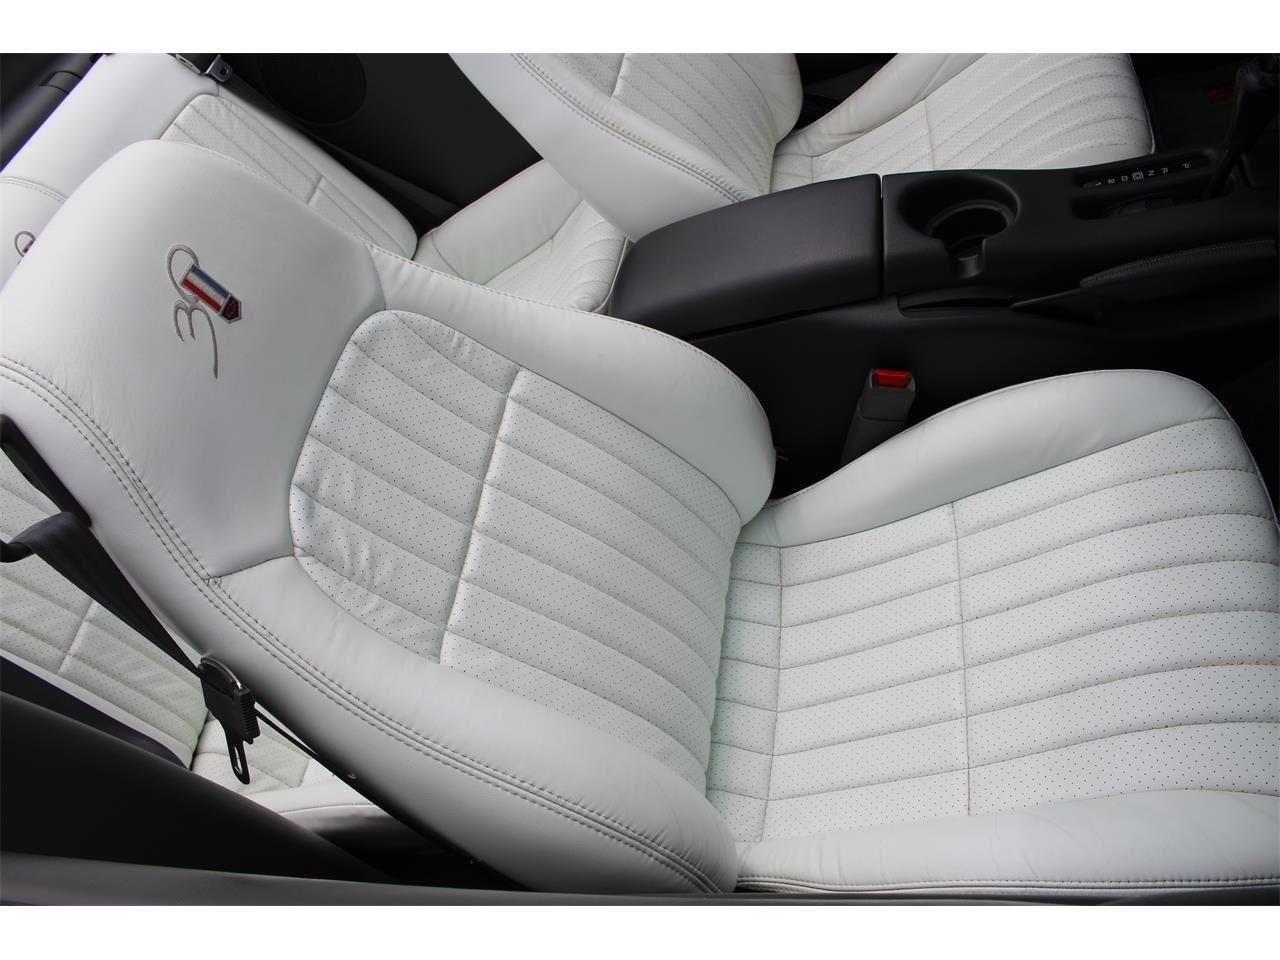 Large Picture of '97 Chevrolet Camaro RS/SS located in Mount Vernon Ohio - $21,900.00 Offered by a Private Seller - MZ9G